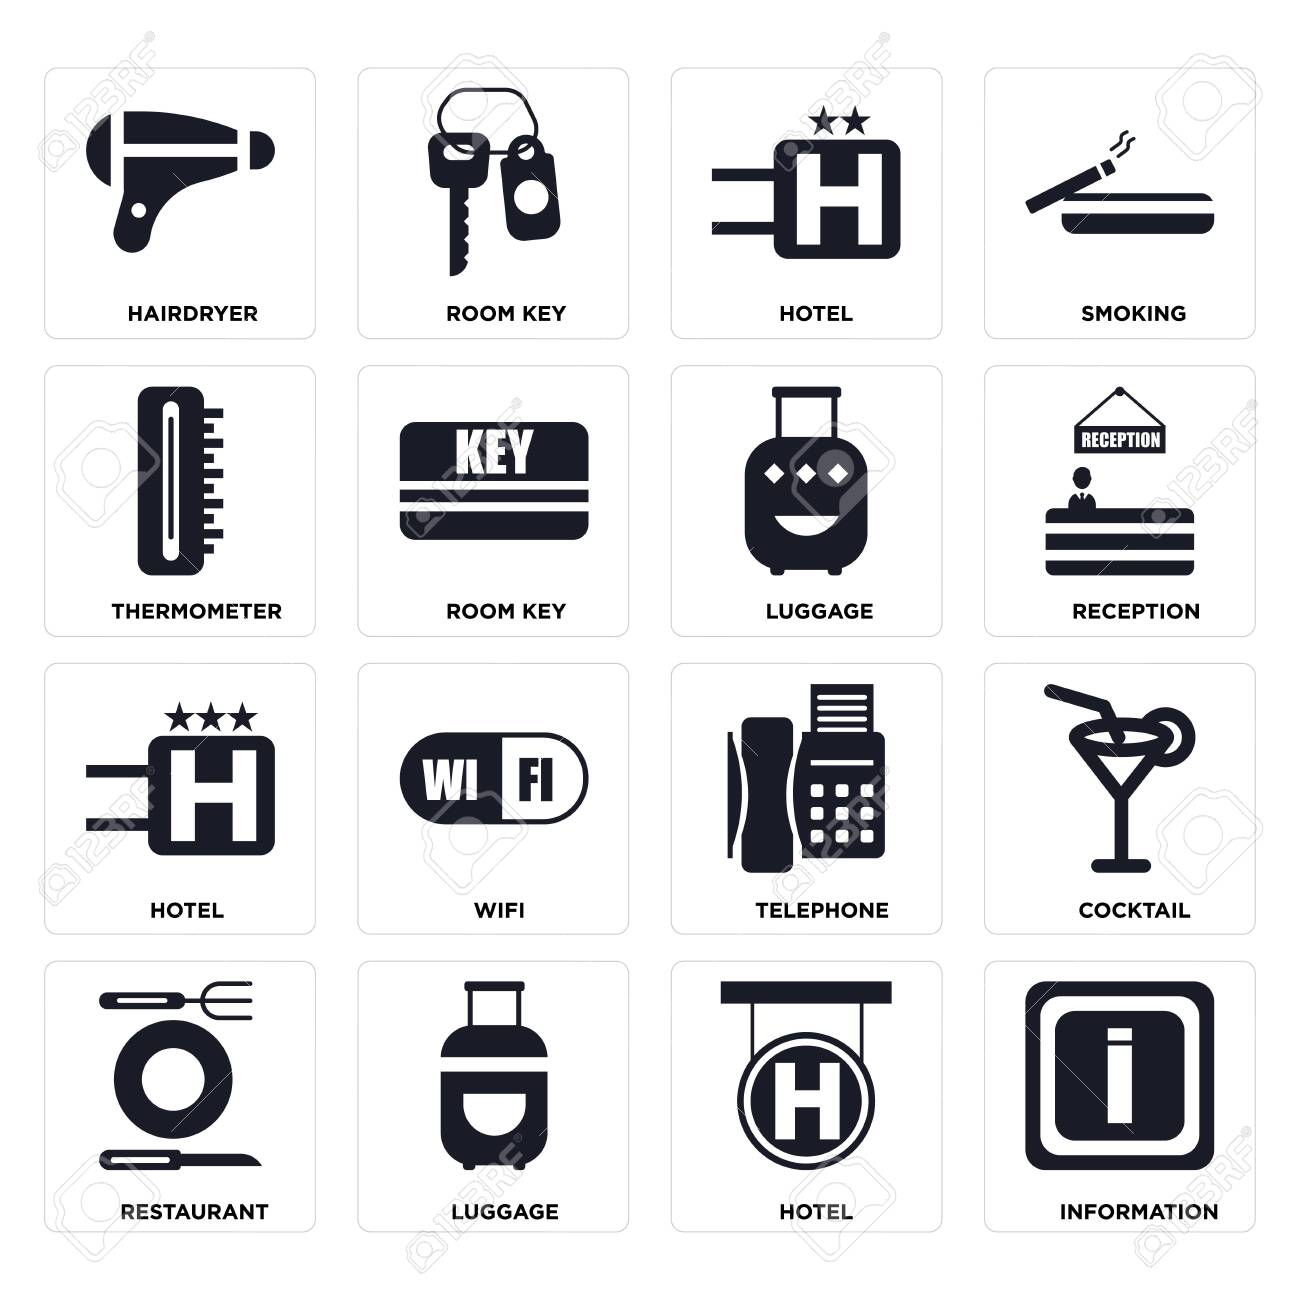 Set Of 16 icons such as Information, Hotel, Luggage, Restaurant, Cocktail, Hairdryer, Thermometer on transparent background, pixel perfect - 116181807